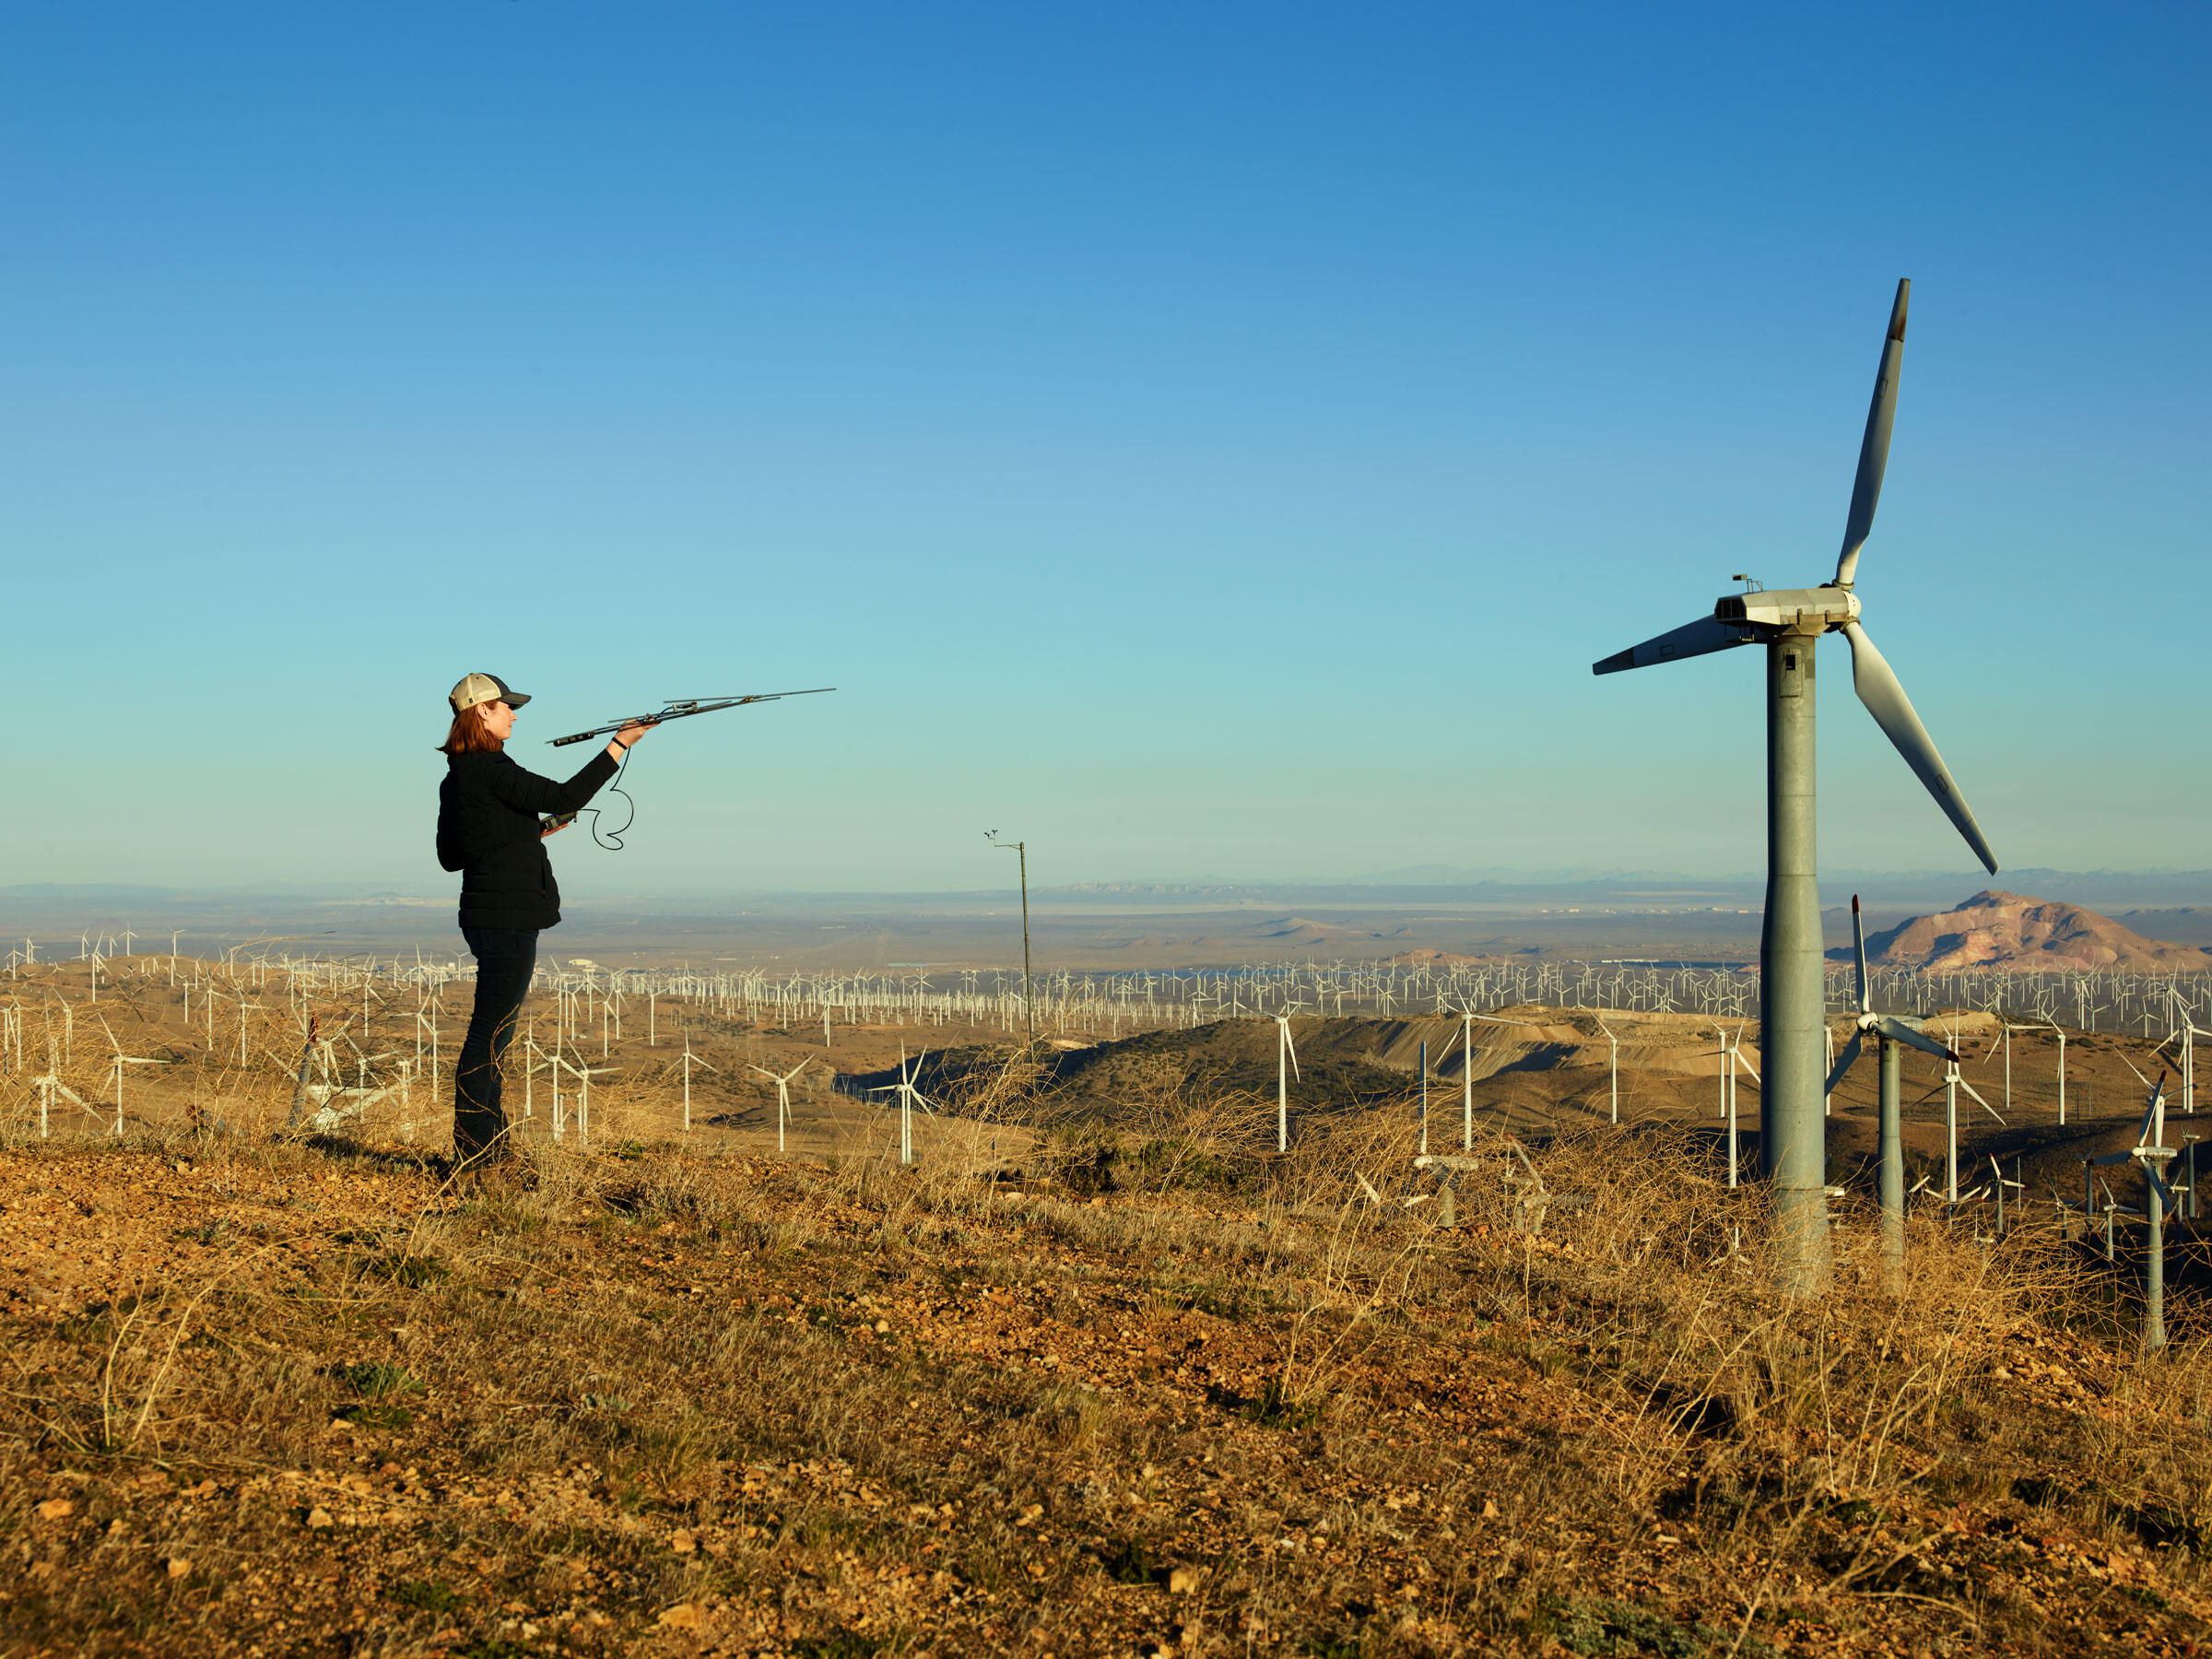 Amanda Wilhelm, Terra-Gen's field team leader, using a handheld antenna to scan for condors at the Tehachapi Wind Resource Area in Kern County, California. Spencer Lowell